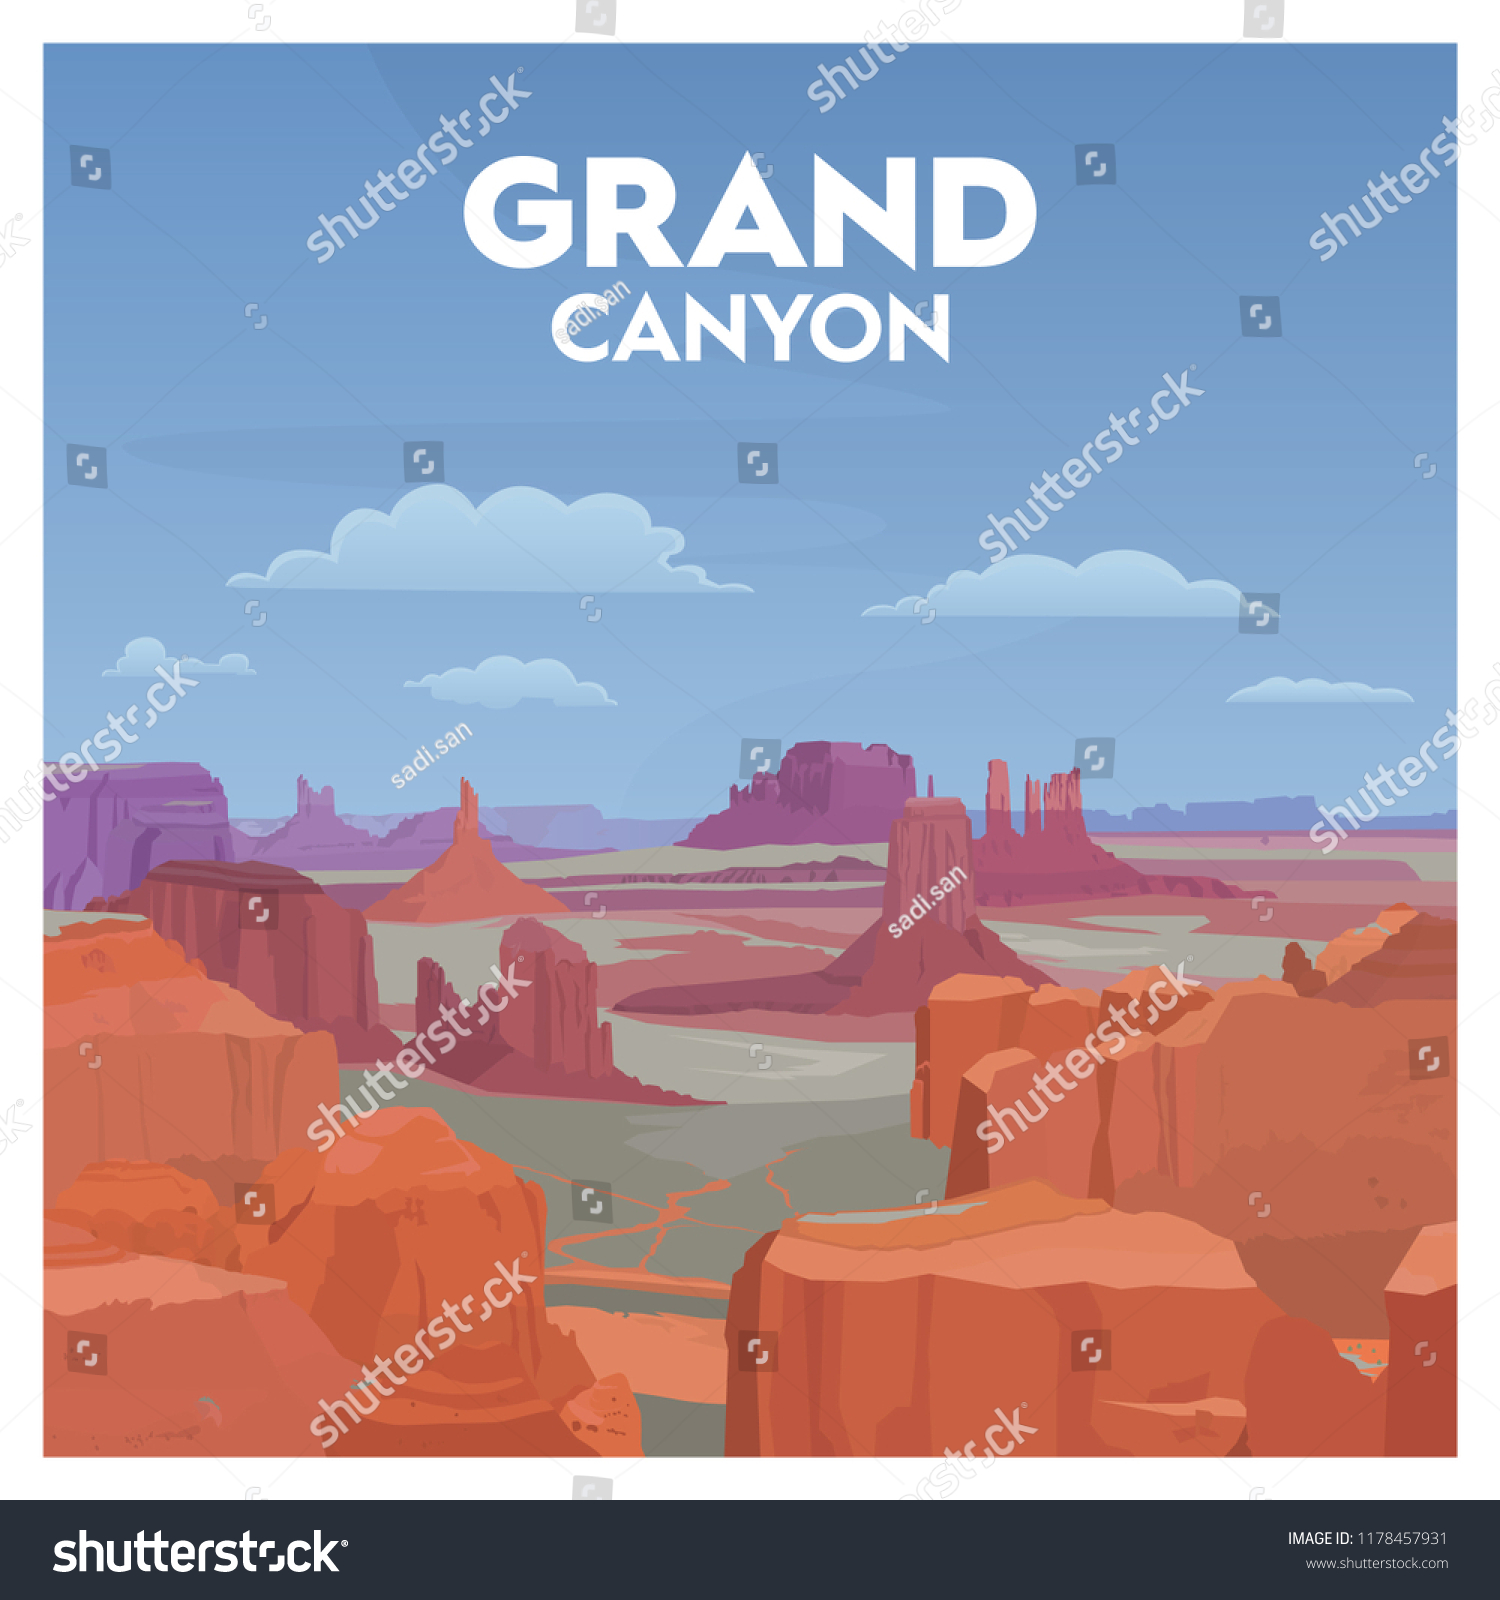 Grand Canyon National Park of USA America Purple Orange Mountain Desert